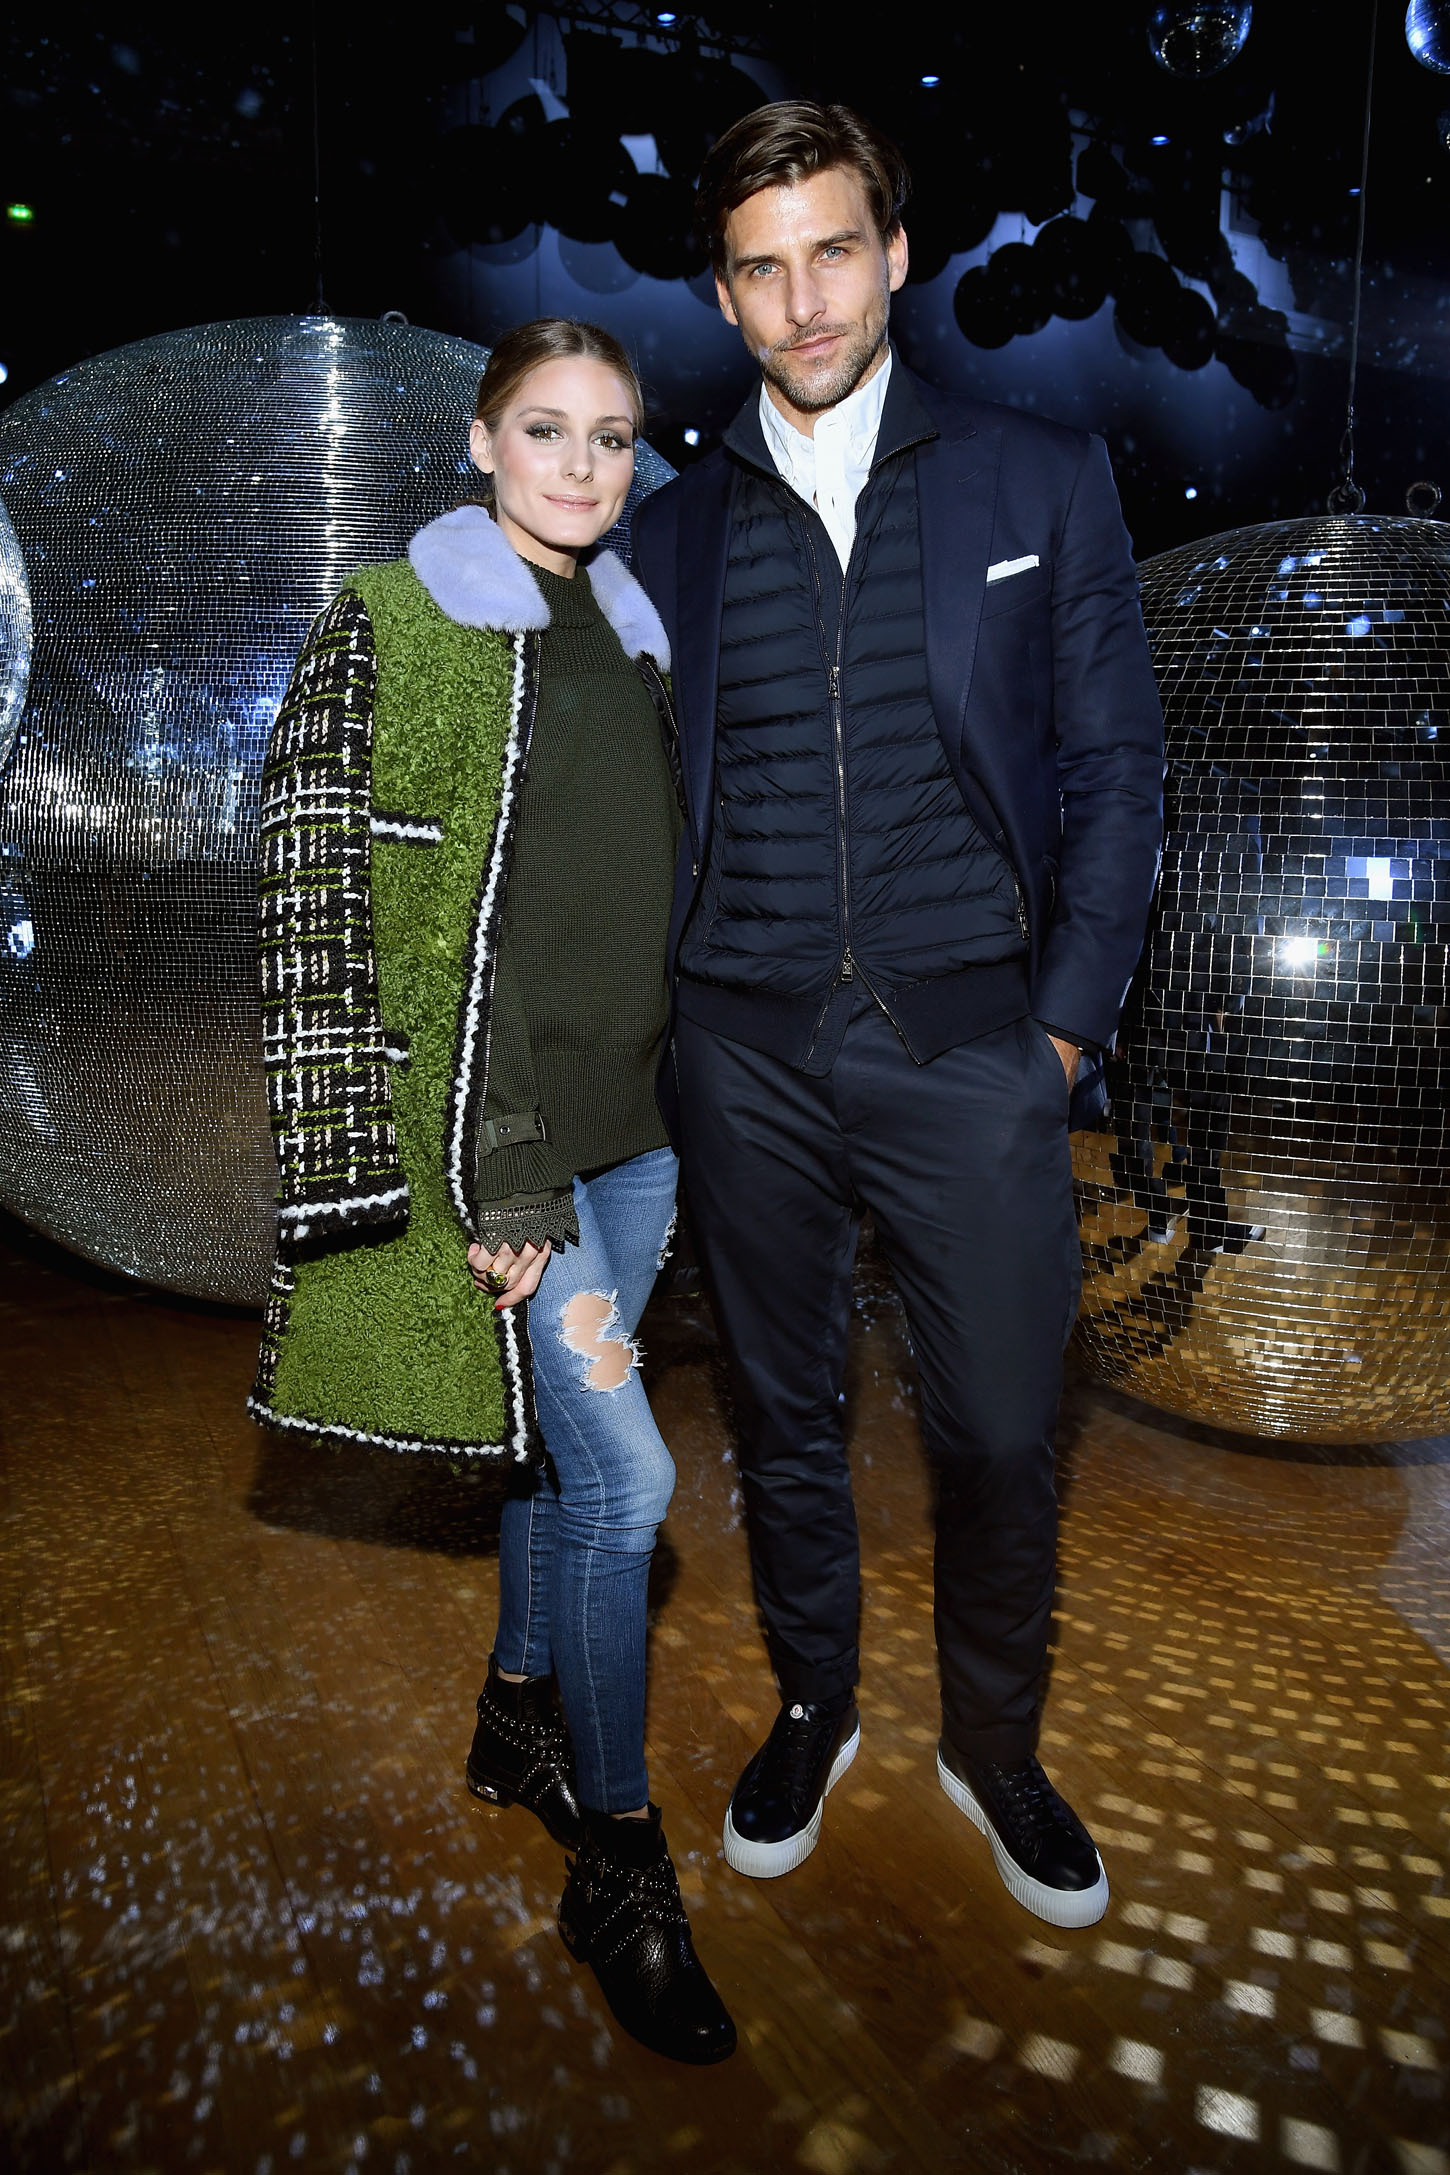 PARIS, FRANCE - OCTOBER 03: Olivia Palermo and  Johannes Huebl attend the Moncler Gamme Rouge show as part of the Paris Fashion Week Womenswear  Spring/Summer 2018 on October 3, 2017 in Paris, France.  (Photo by Pascal Le Segretain/Getty Images)